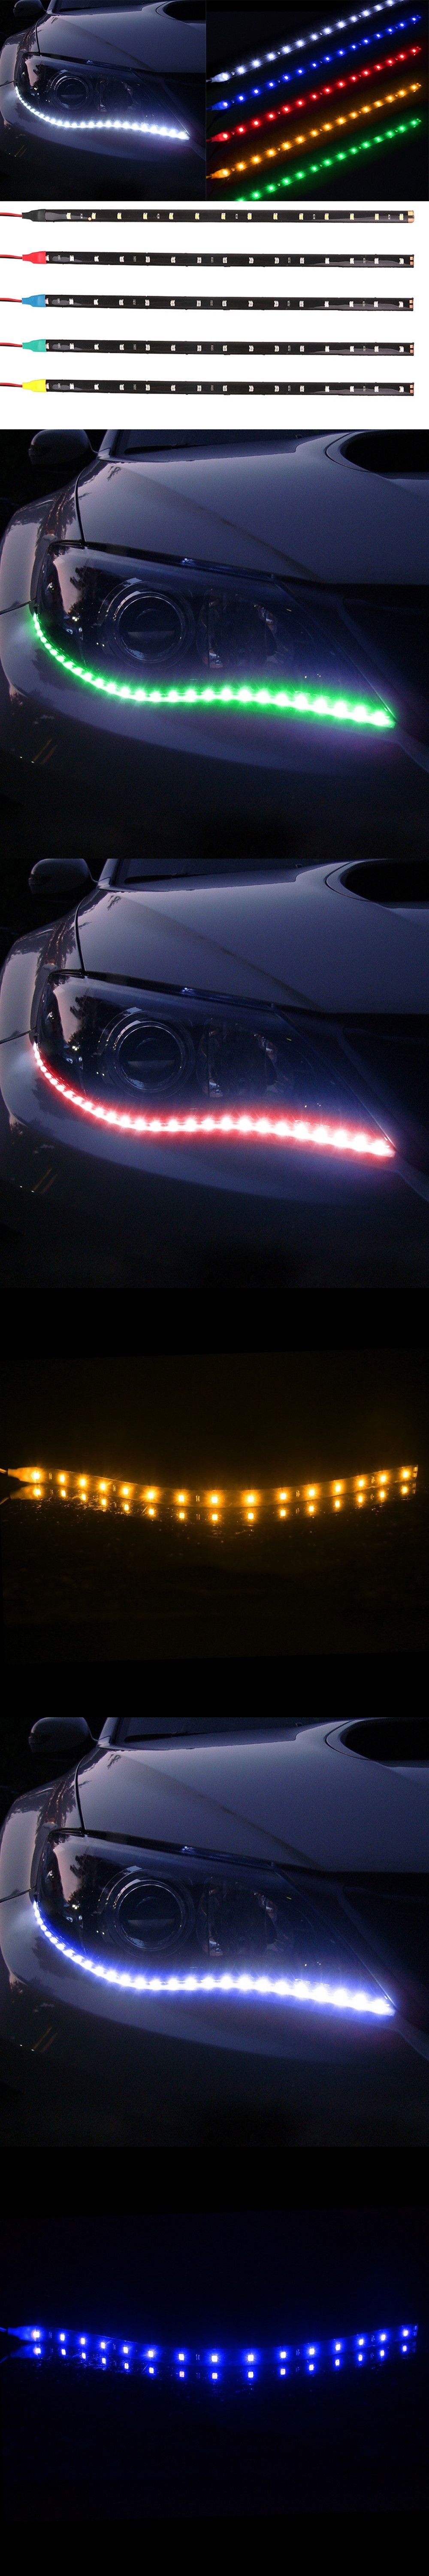 Led Light Strips For Car Interior Interior Mouldings 2Pcs Fashion 12V Auto Decoration Waterproof Led